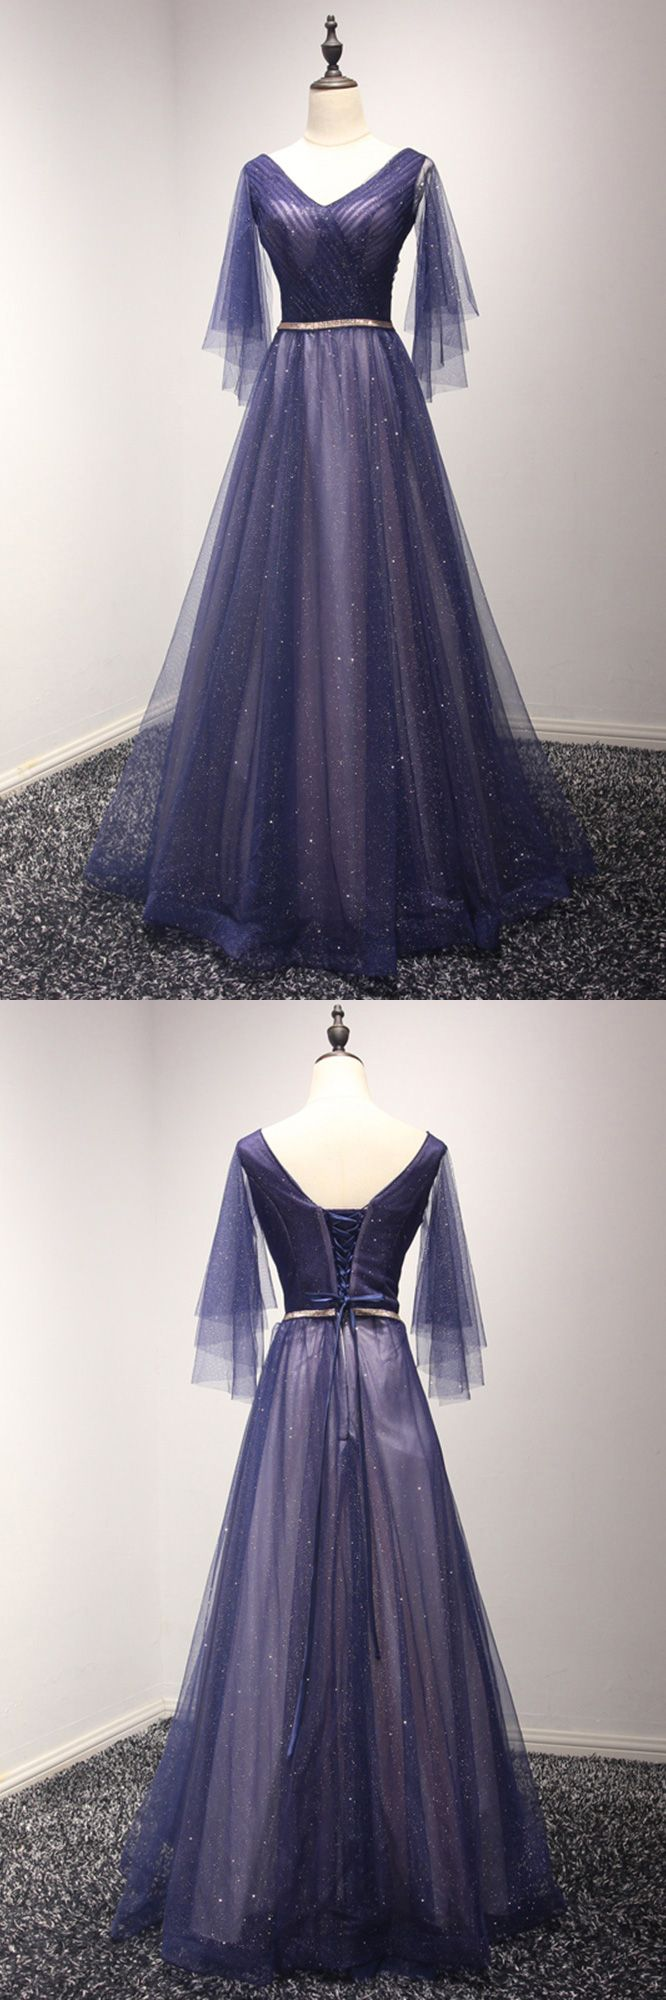 Only $169, Sparkly Puffy Tulle Long Blue Prom Dress With Sweetheart Sleeves #AKE18012 at #SheProm. SheProm is an online store with thousands of dresses, range from Prom,Formal,Evening,Blue,A Line Dresses,Long Dresses,Long Sleeve Dresses,Customizable Dresses and so on. Not only selling formal dresses, more and more trendy dress styles will be updated daily to our store. With low price and high quality guaranteed, you will definitely like shopping from us.